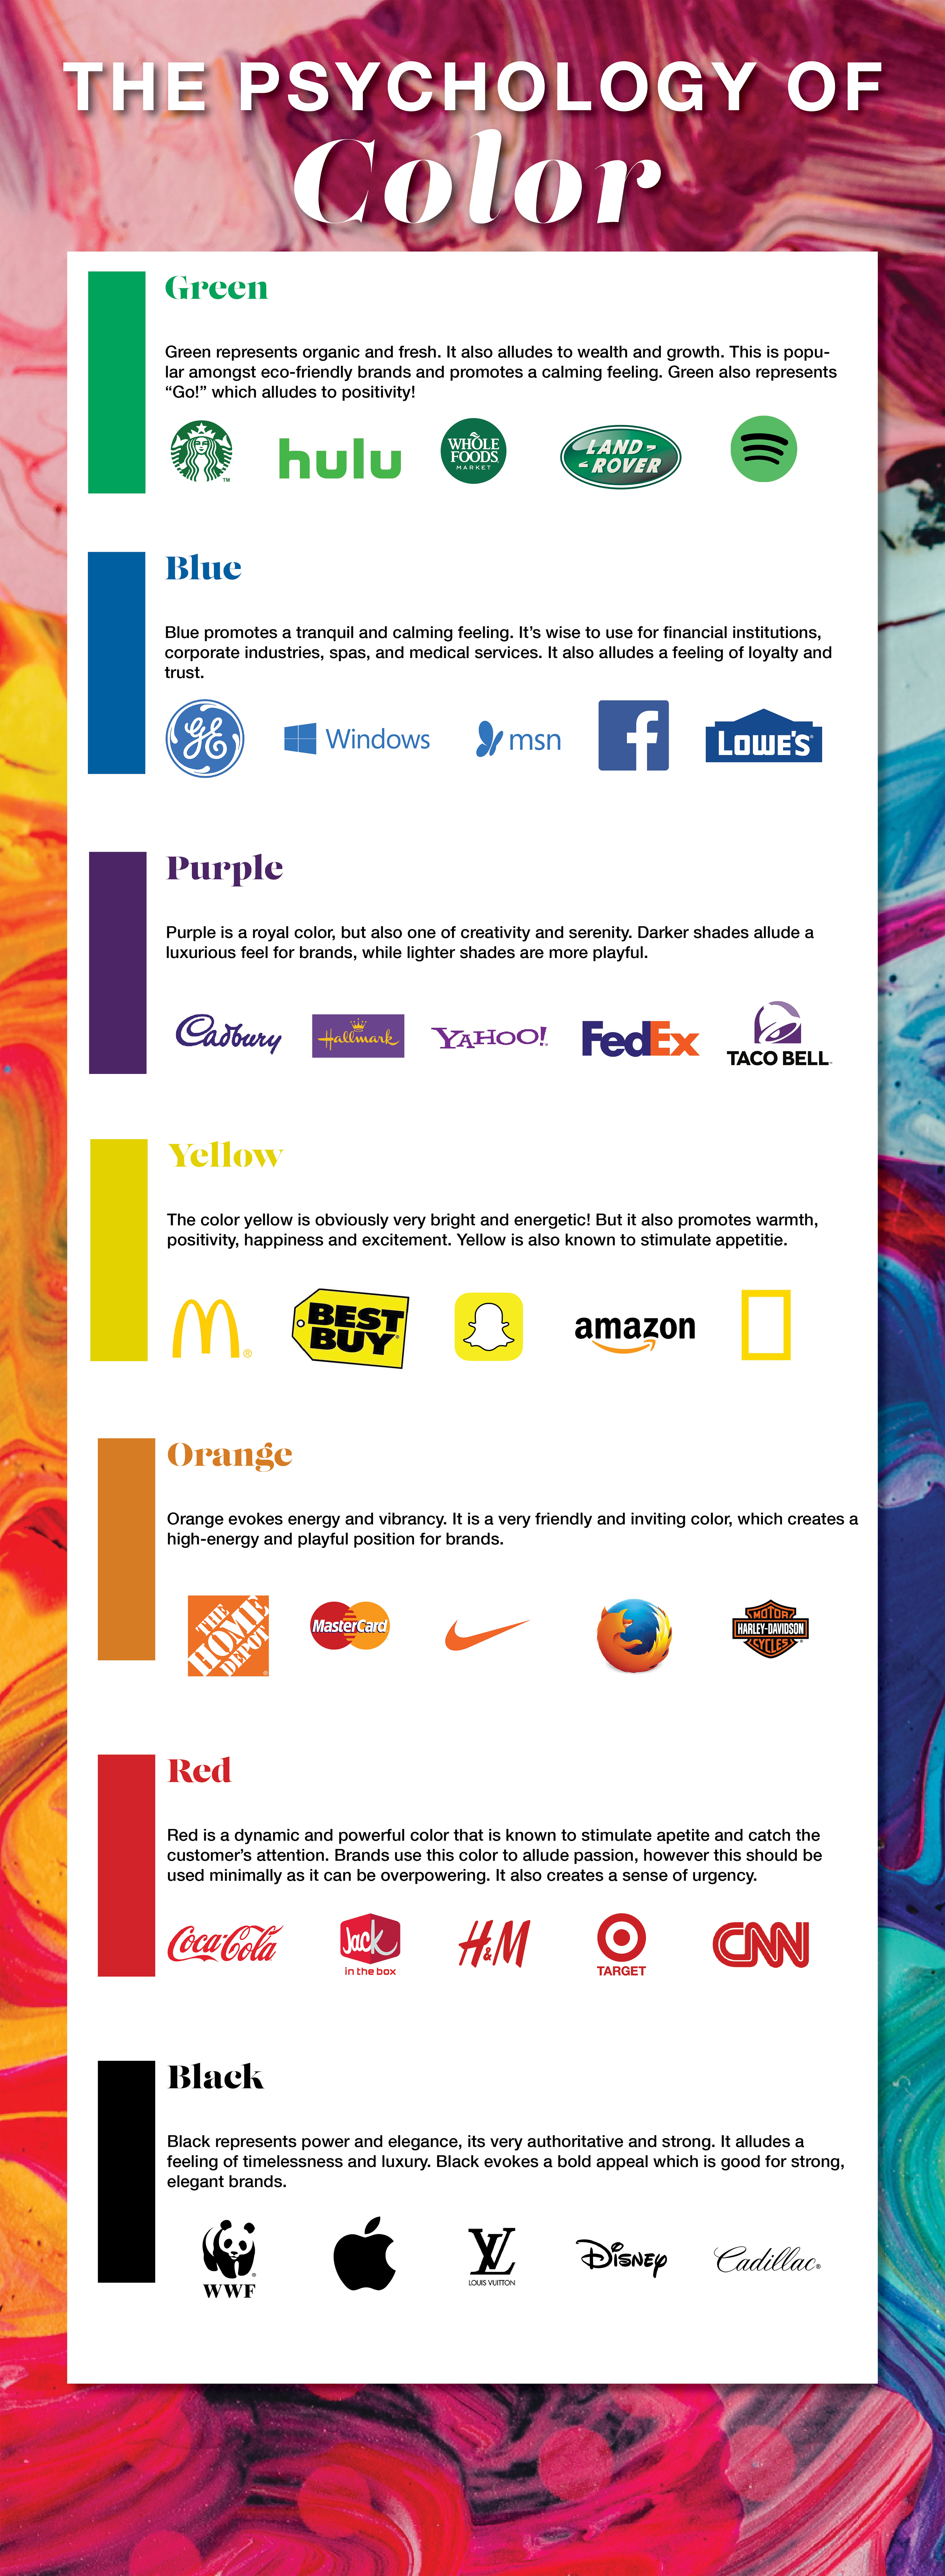 ColorPsychology_Infographic copy.jpg